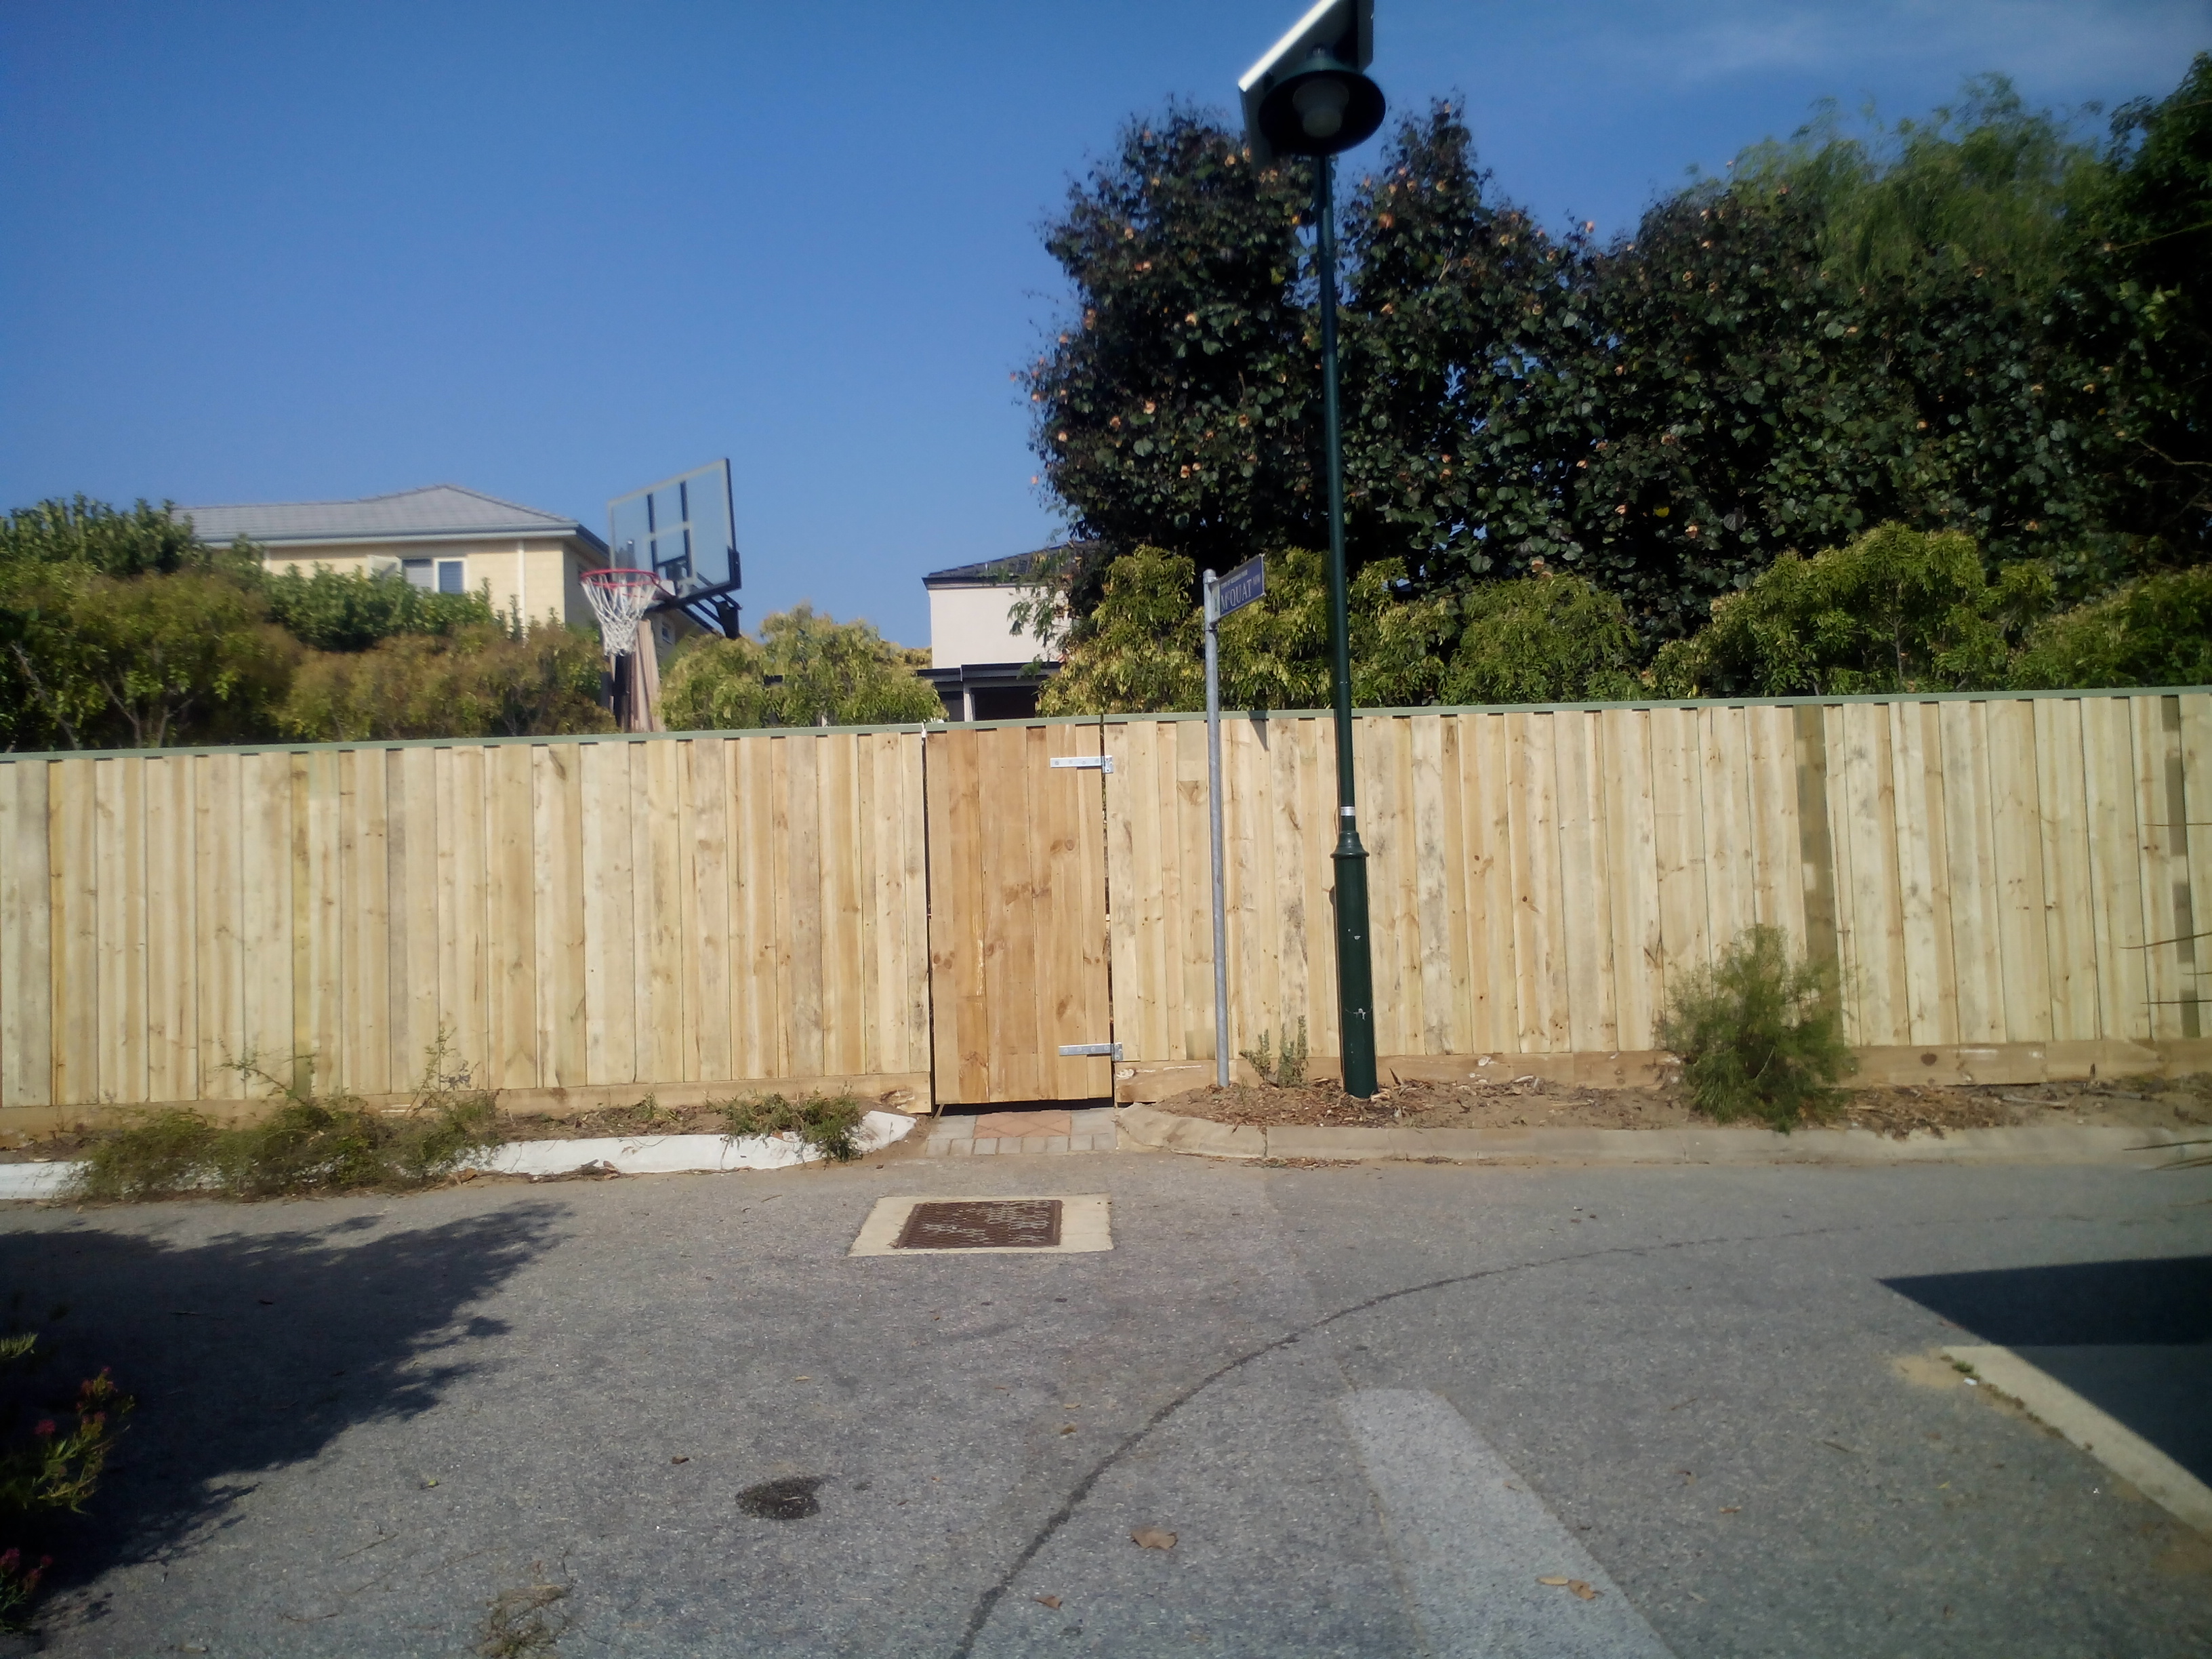 Laneway fence with gate